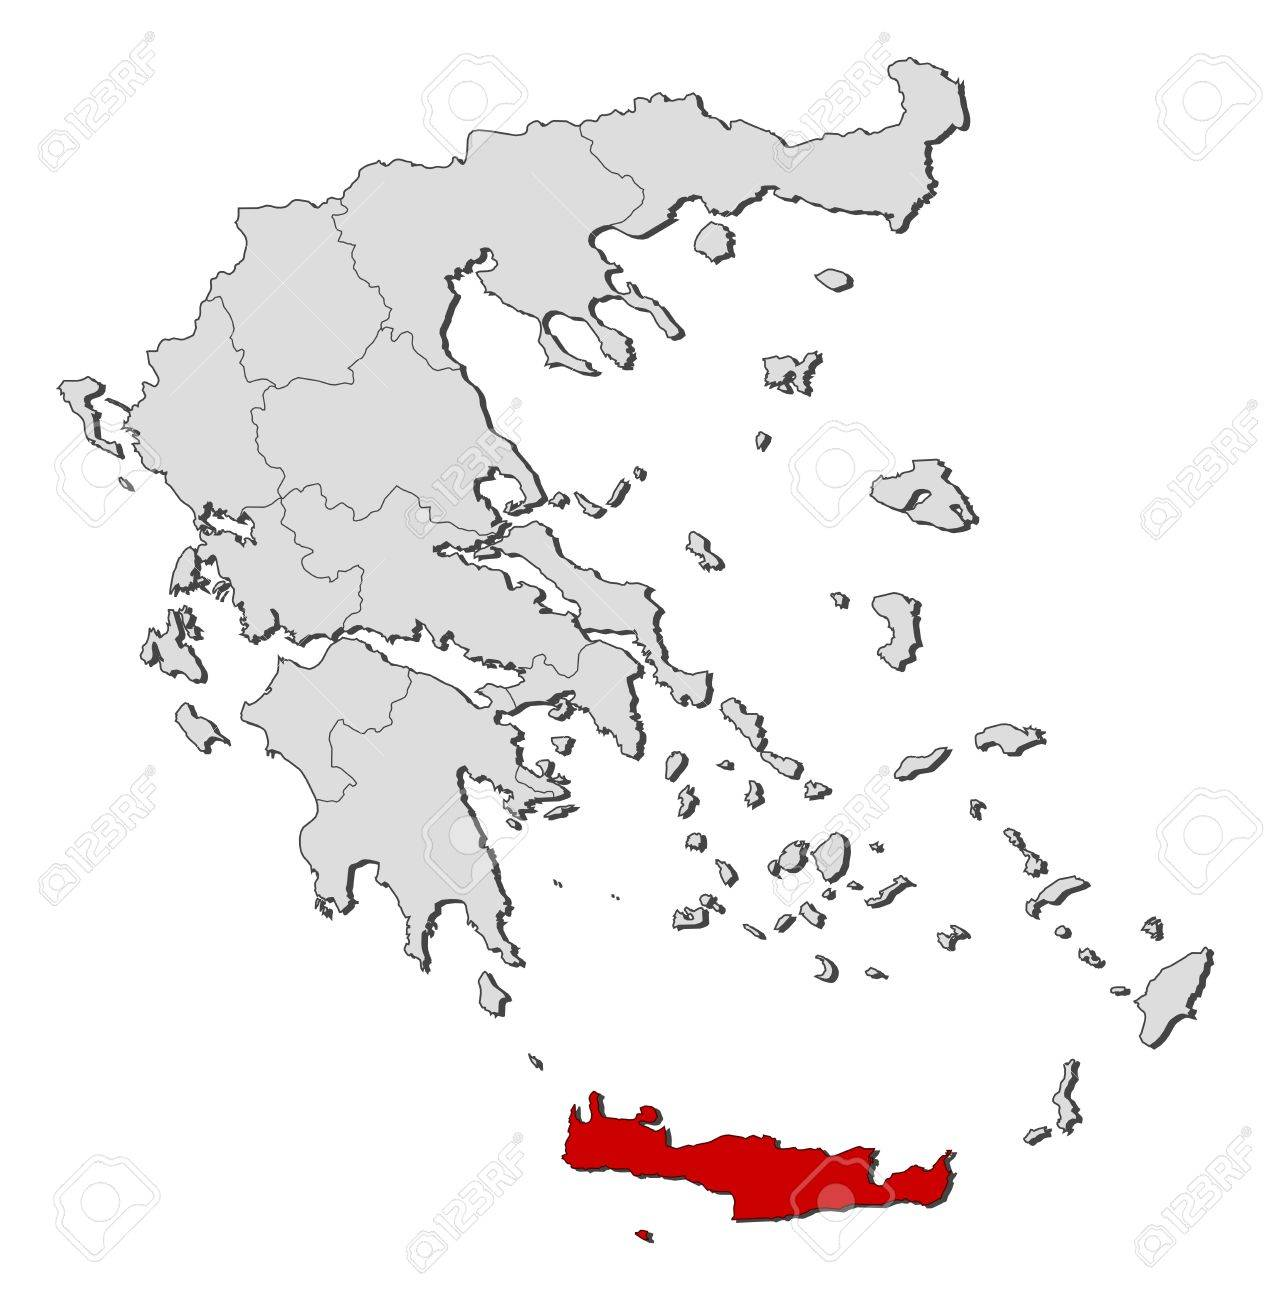 Political Map Of Greece With The Several States Where Crete Is